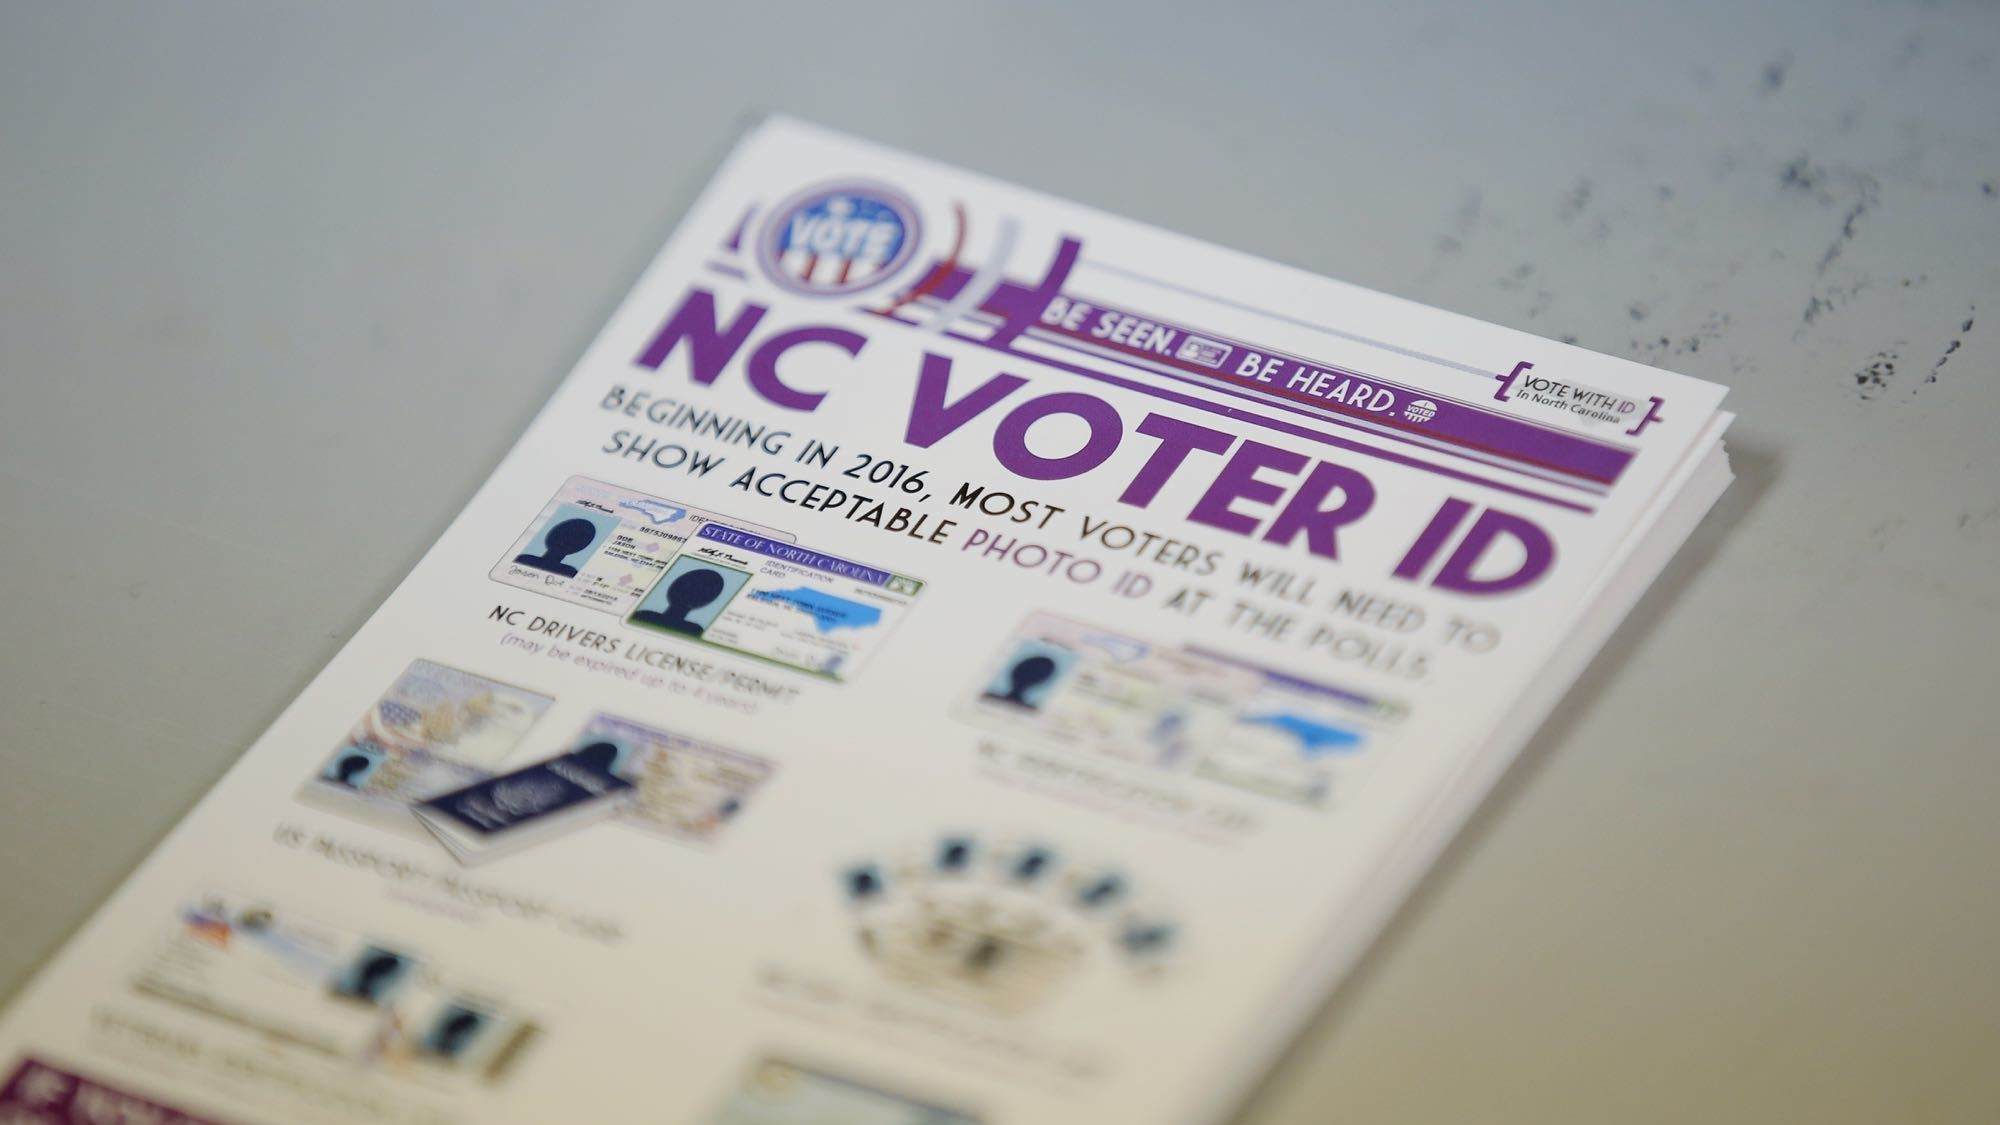 A new ruling on voter ID laws could affect the 2016 presidential race